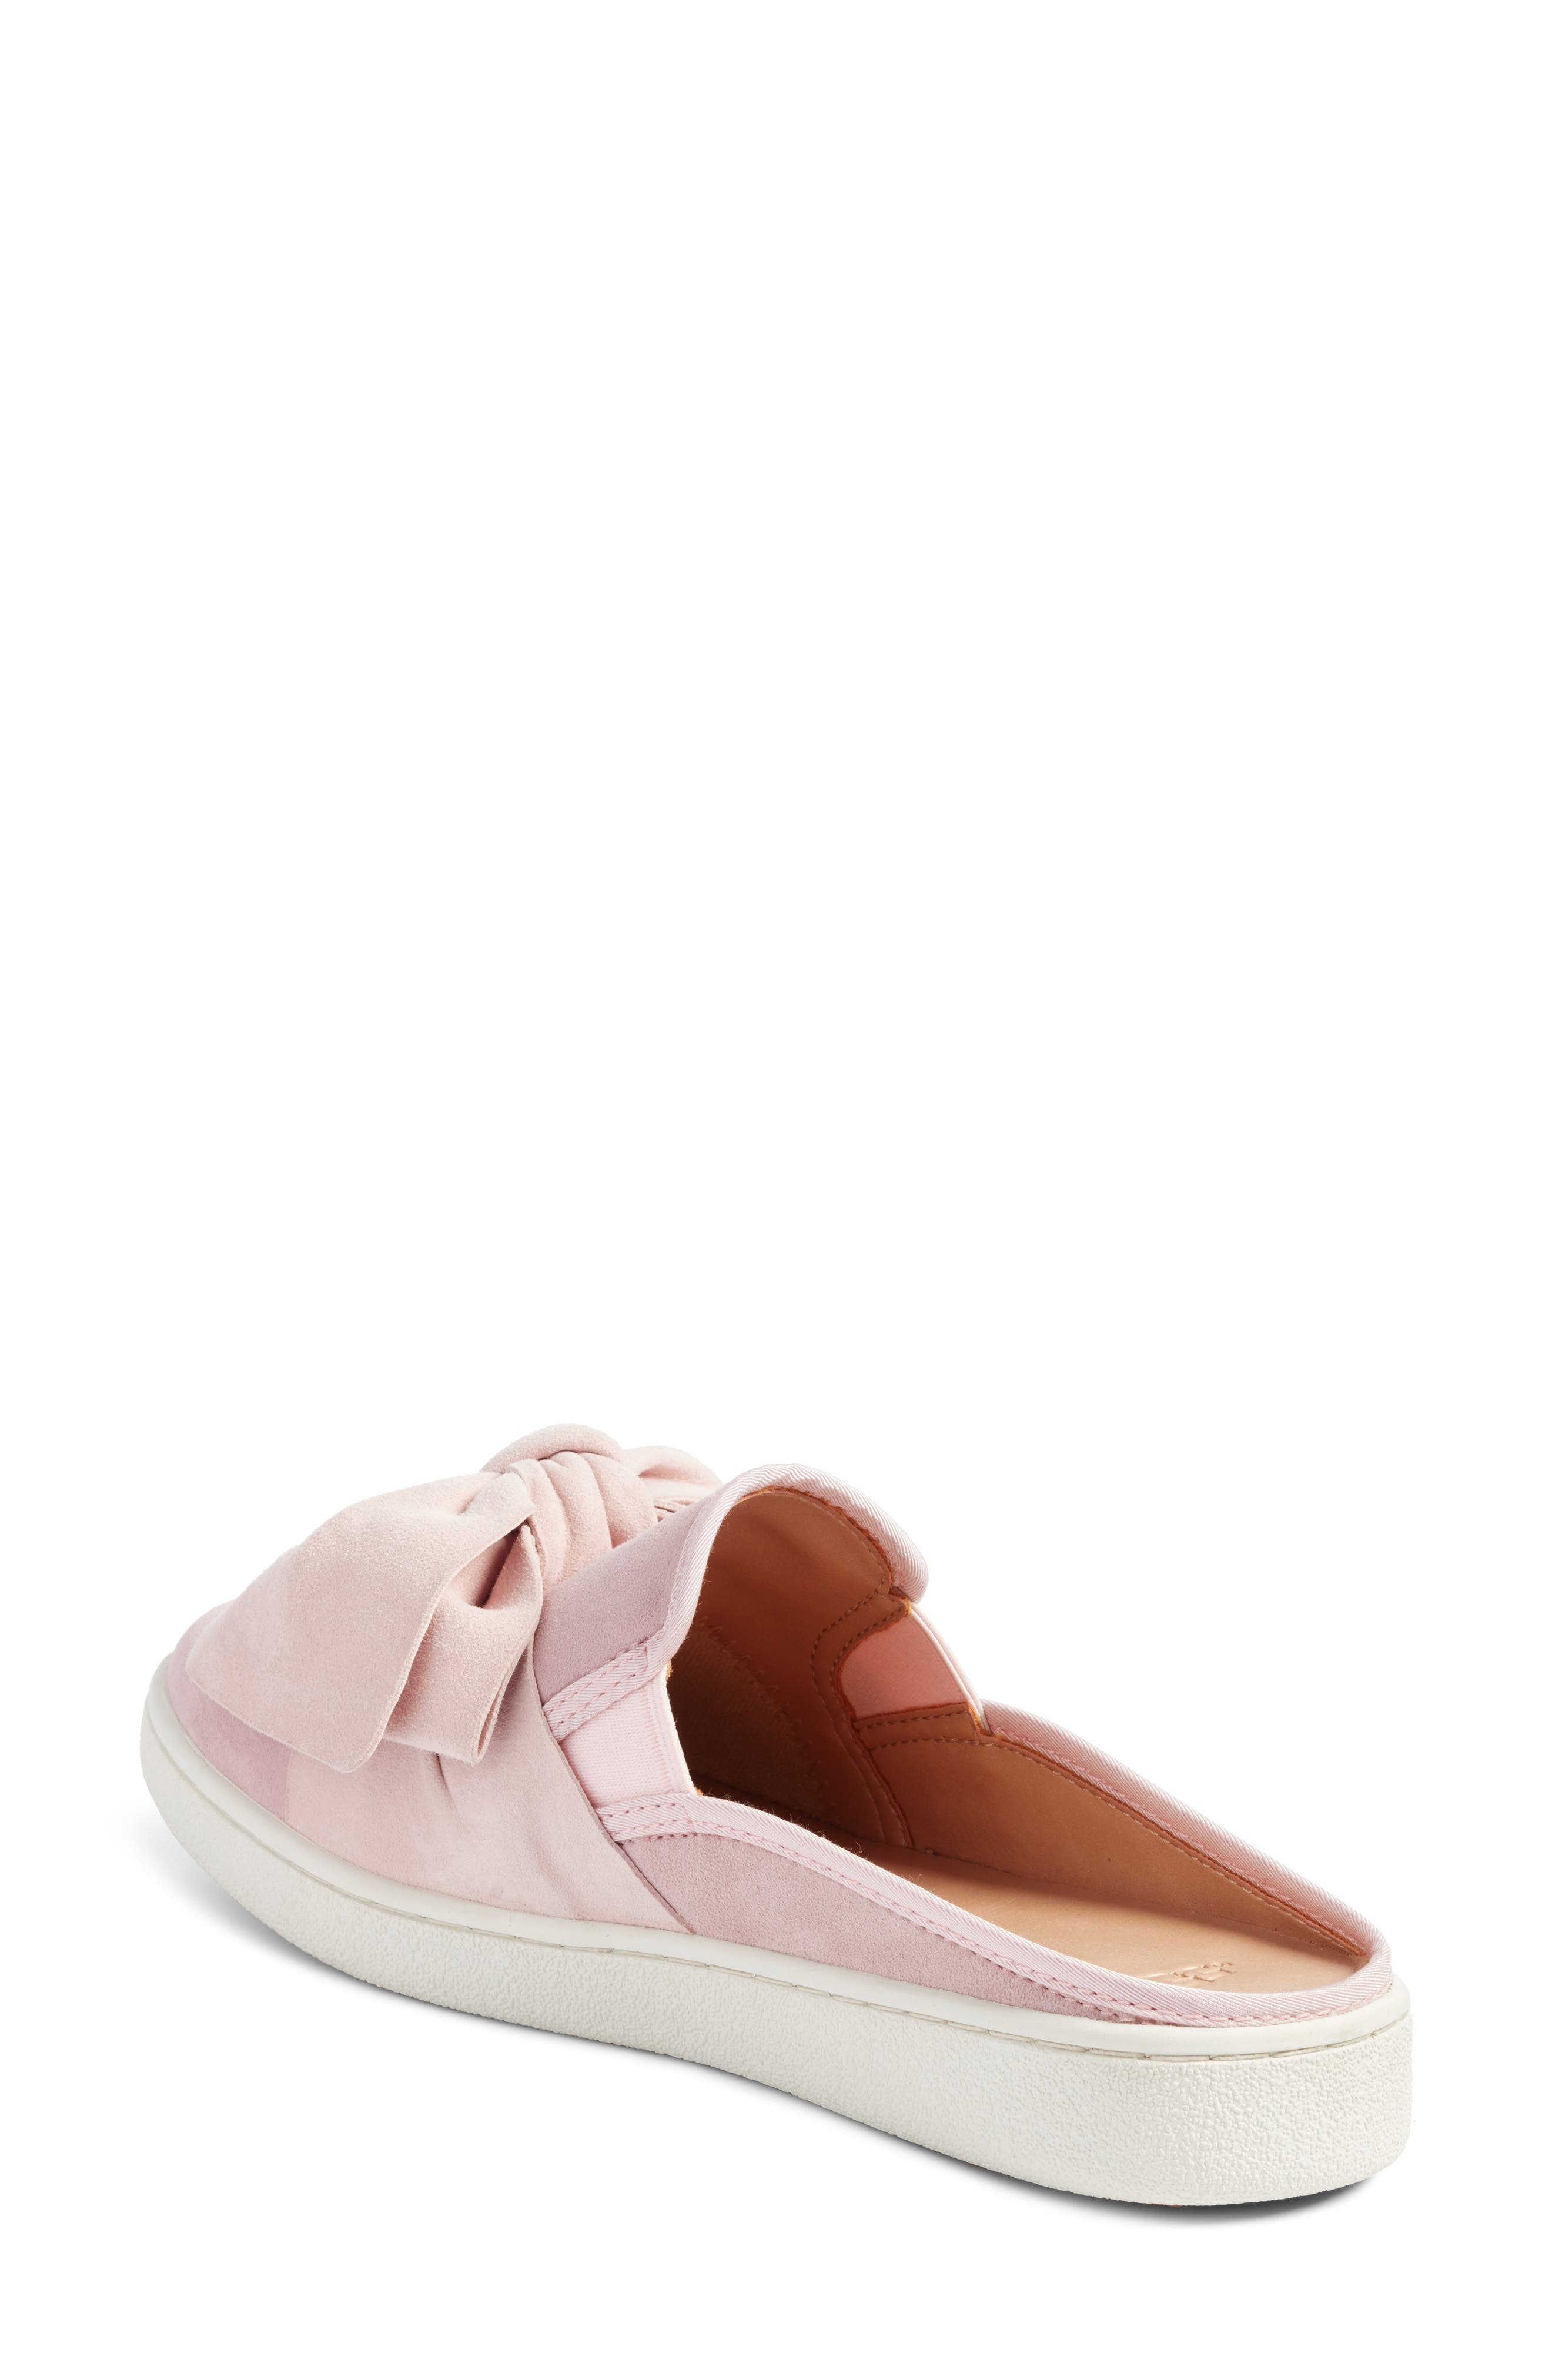 Luci Bow Sneaker Mule,                             Alternate thumbnail 2, color,                             Seashell Pink Suede